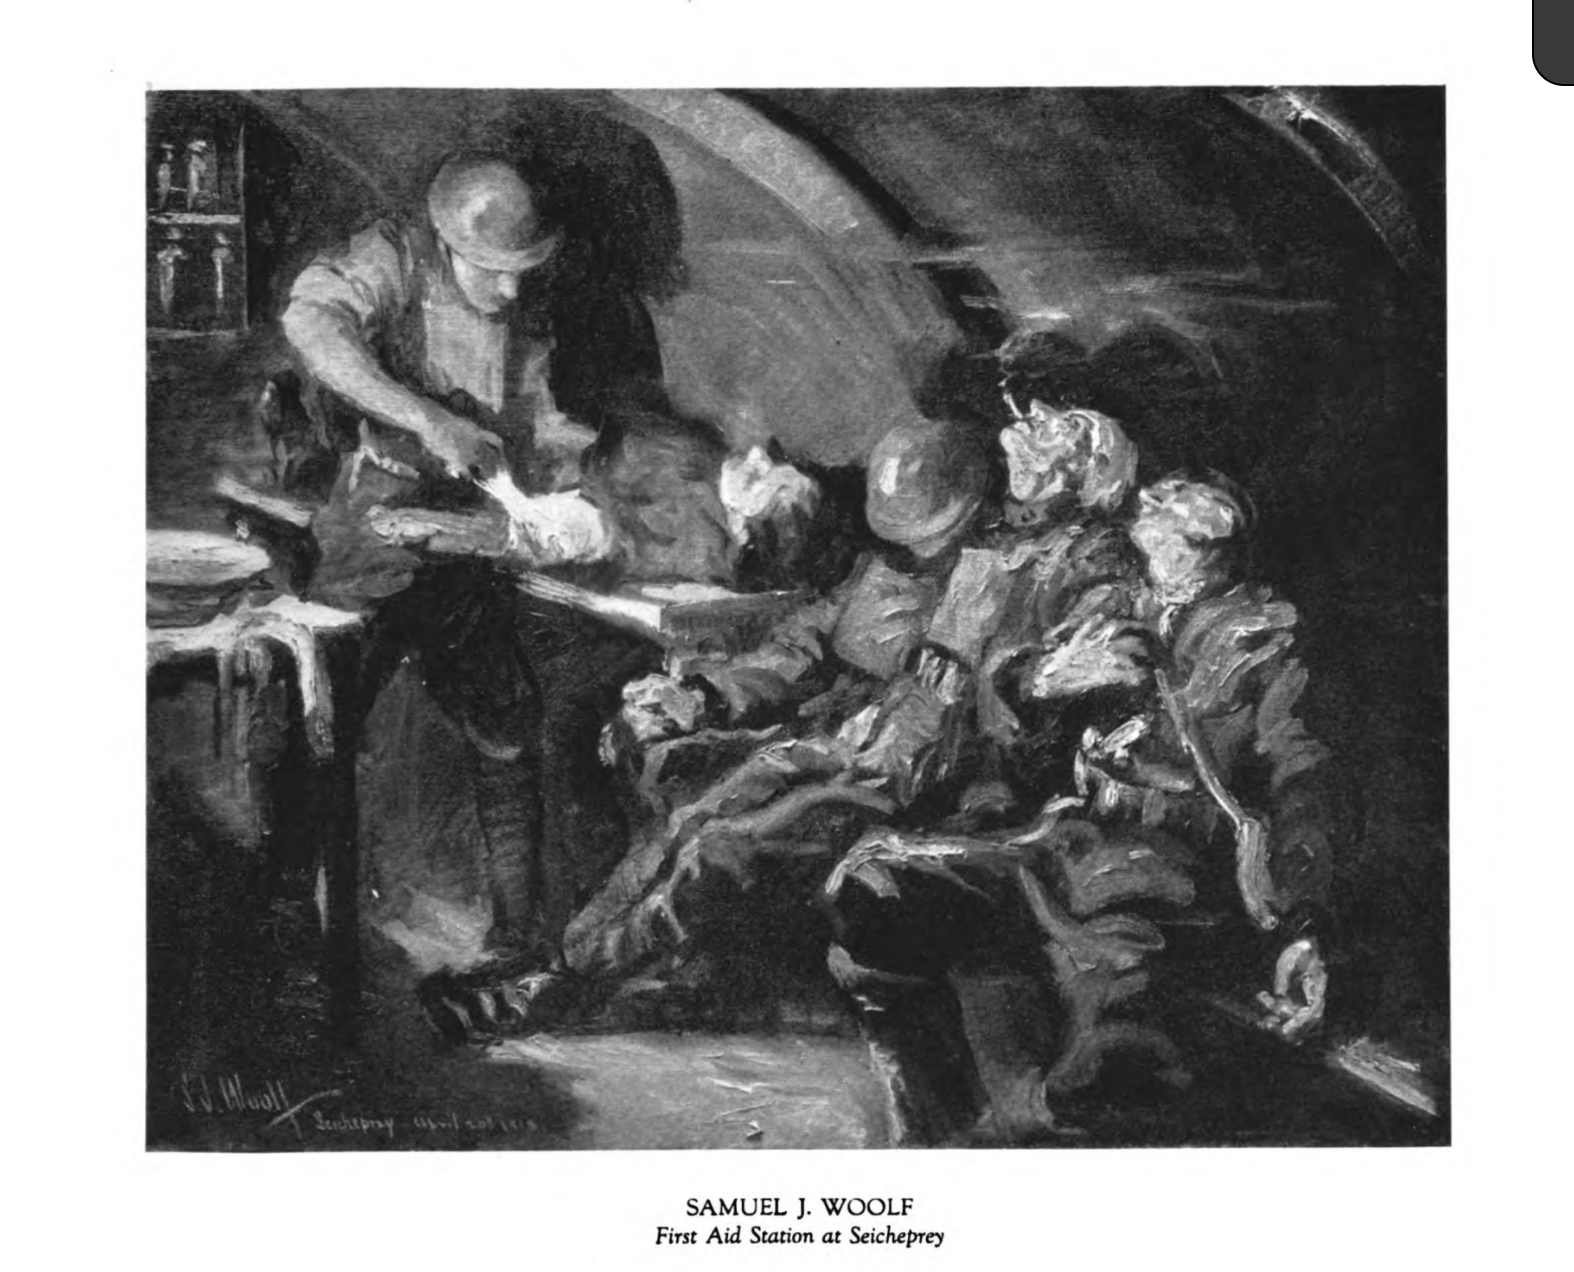 Solders underground tending to the wounded Artist Samuel J. Woolf